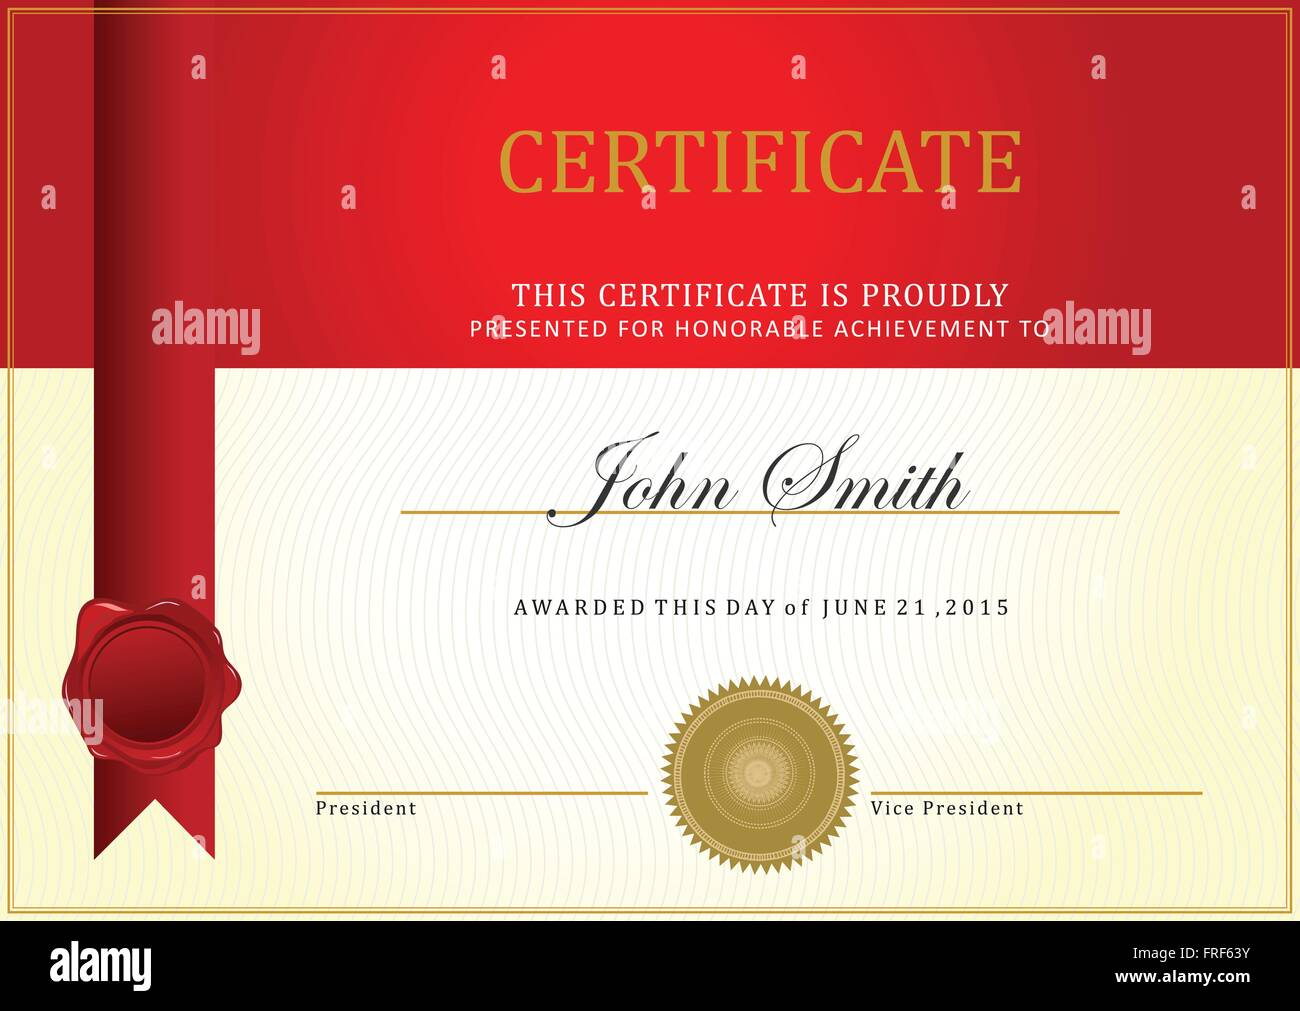 Certificate Coupon Template Vintage Border Stockfotos & Certificate ...